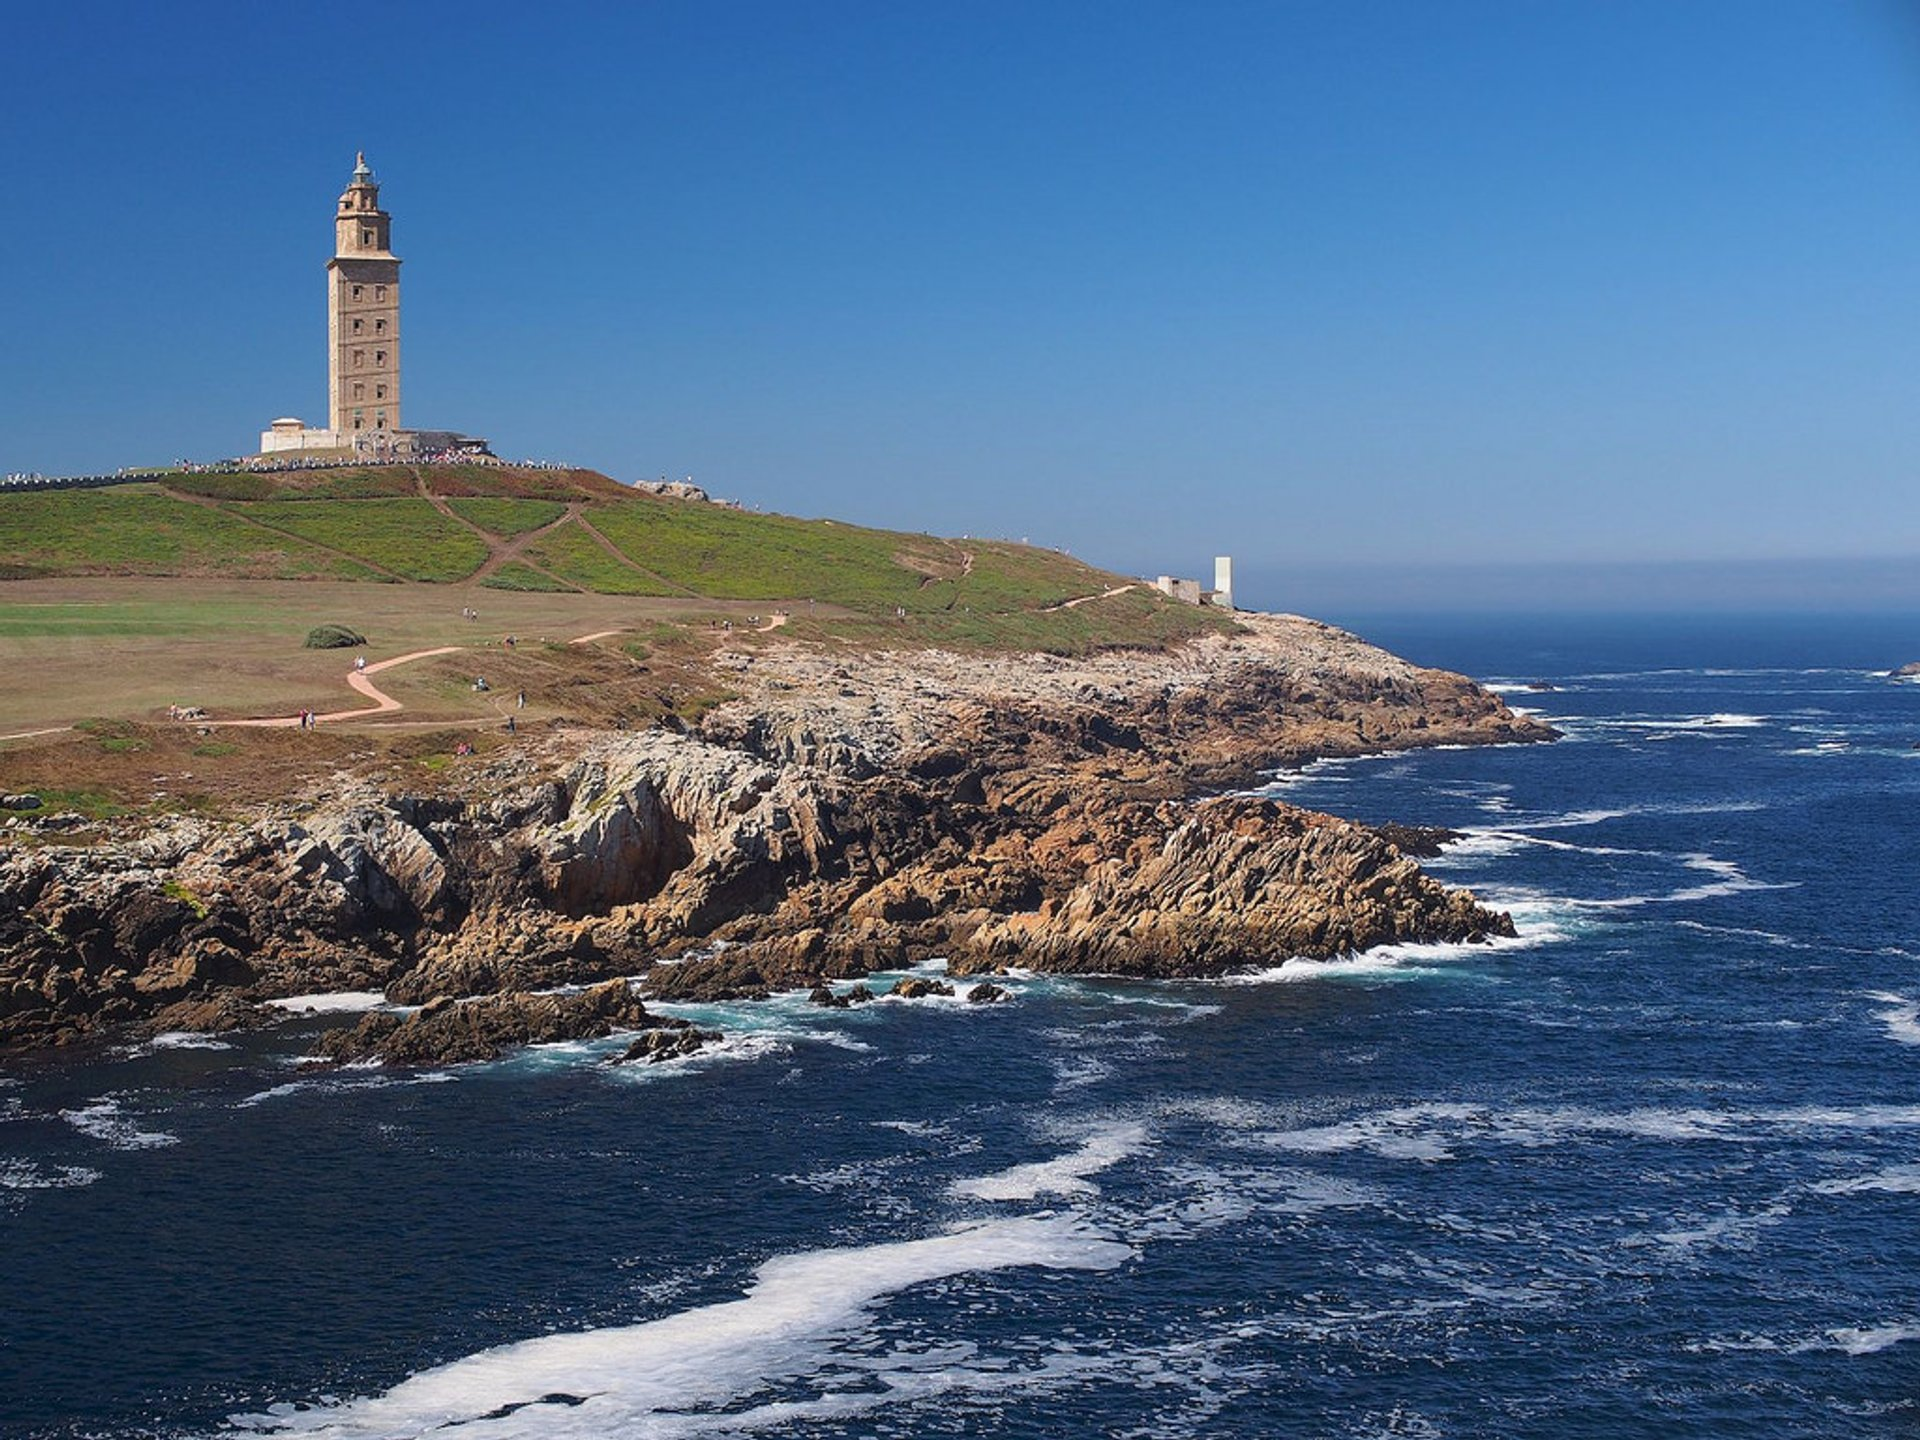 Tower of Hercules in Spain 2020 - Best Time